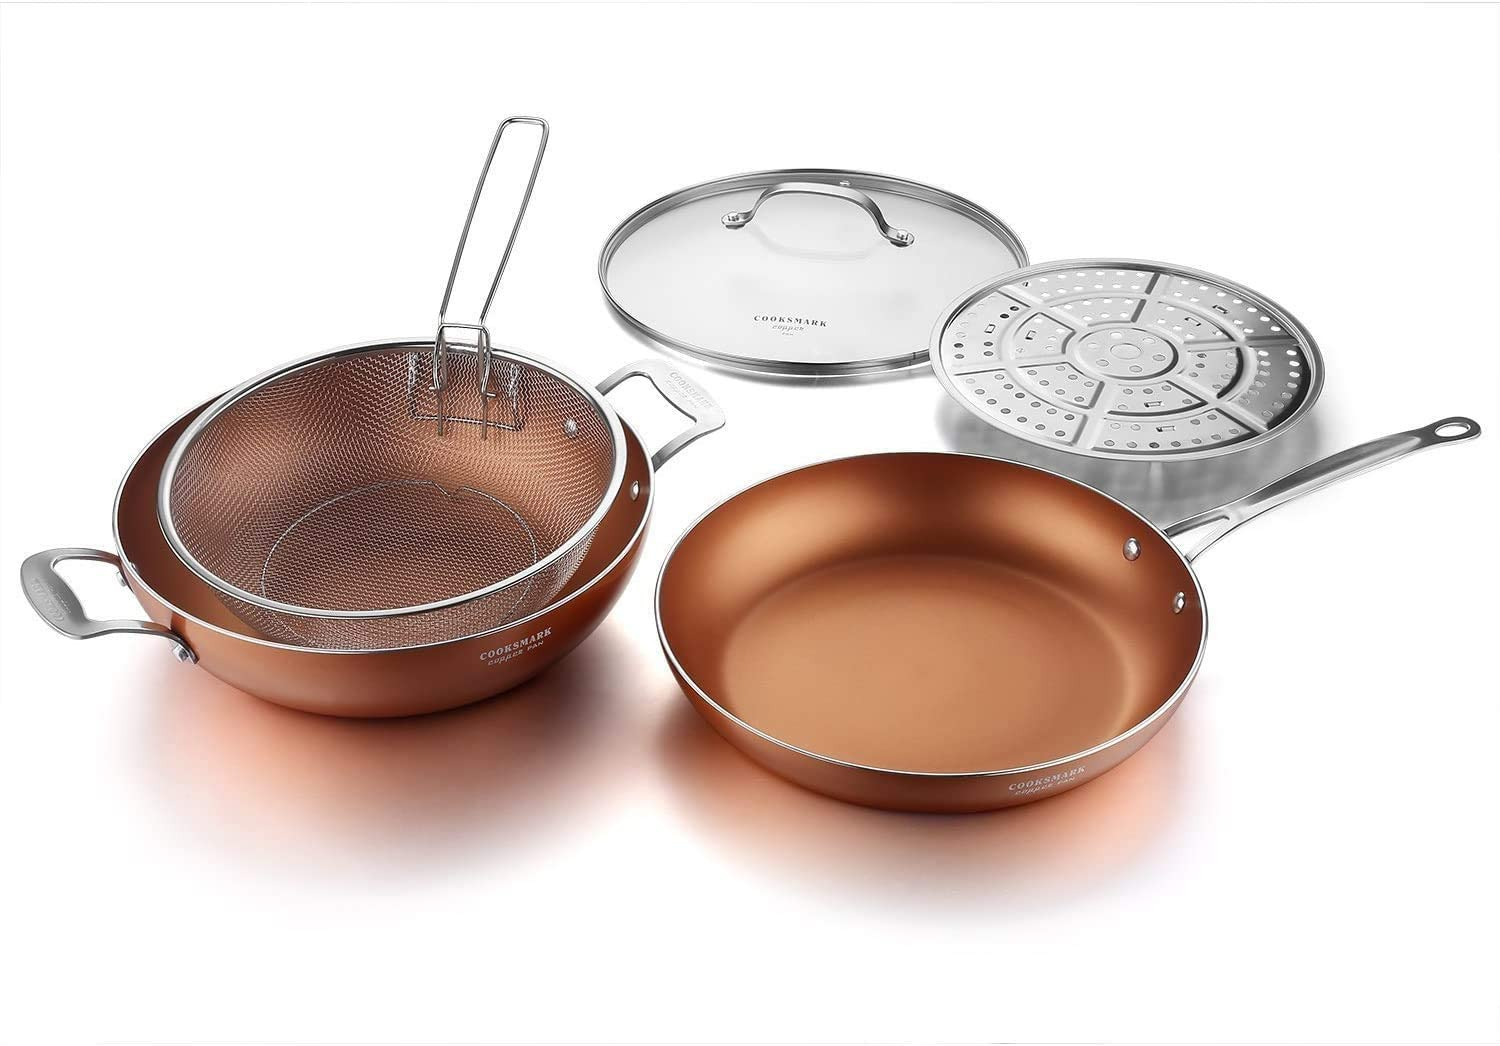 12-Inch Nonstick Induction Copper Pan 定番から日本未入荷 別倉庫からの配送 with S Lid Fry and Basket